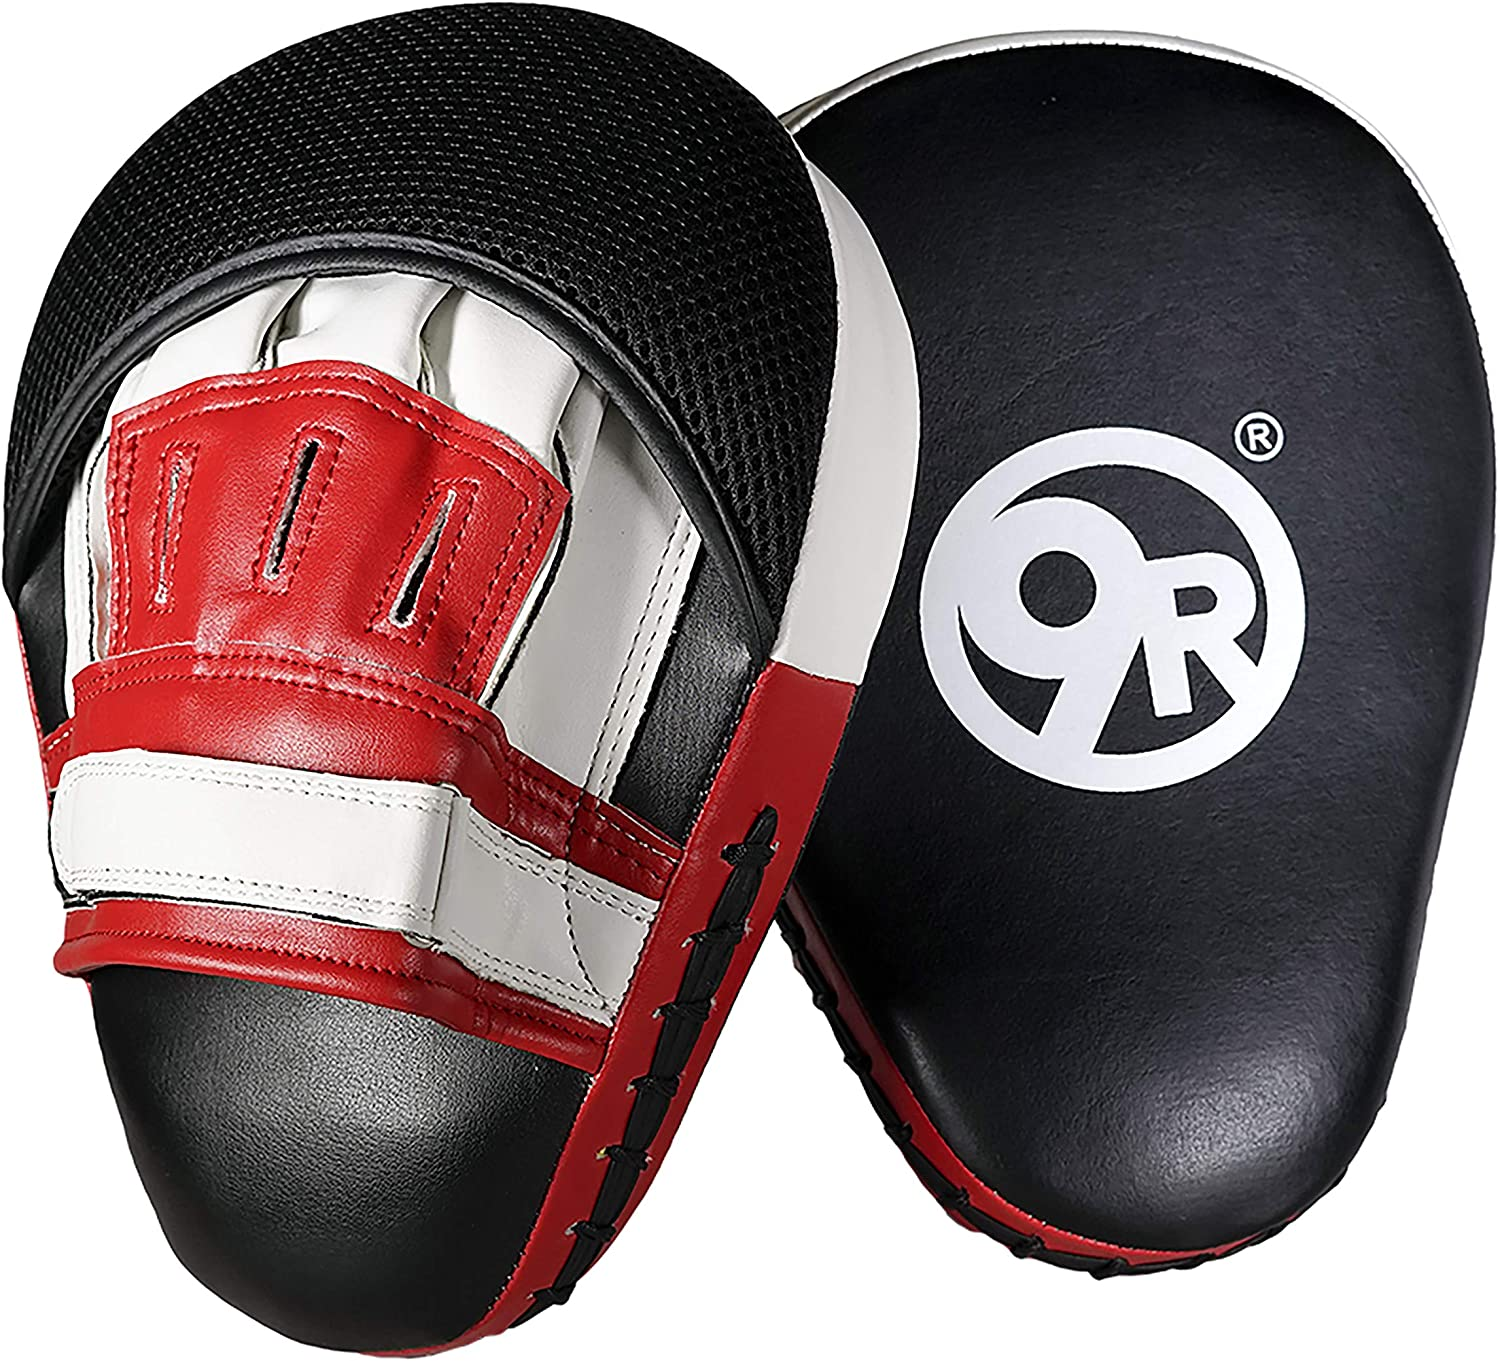 Sunny Days Entertainment 9Round Fitness Focus Punch Mitts for Men and Women | Boxing Strike Pads for Training at Home - Red and Black (320199)